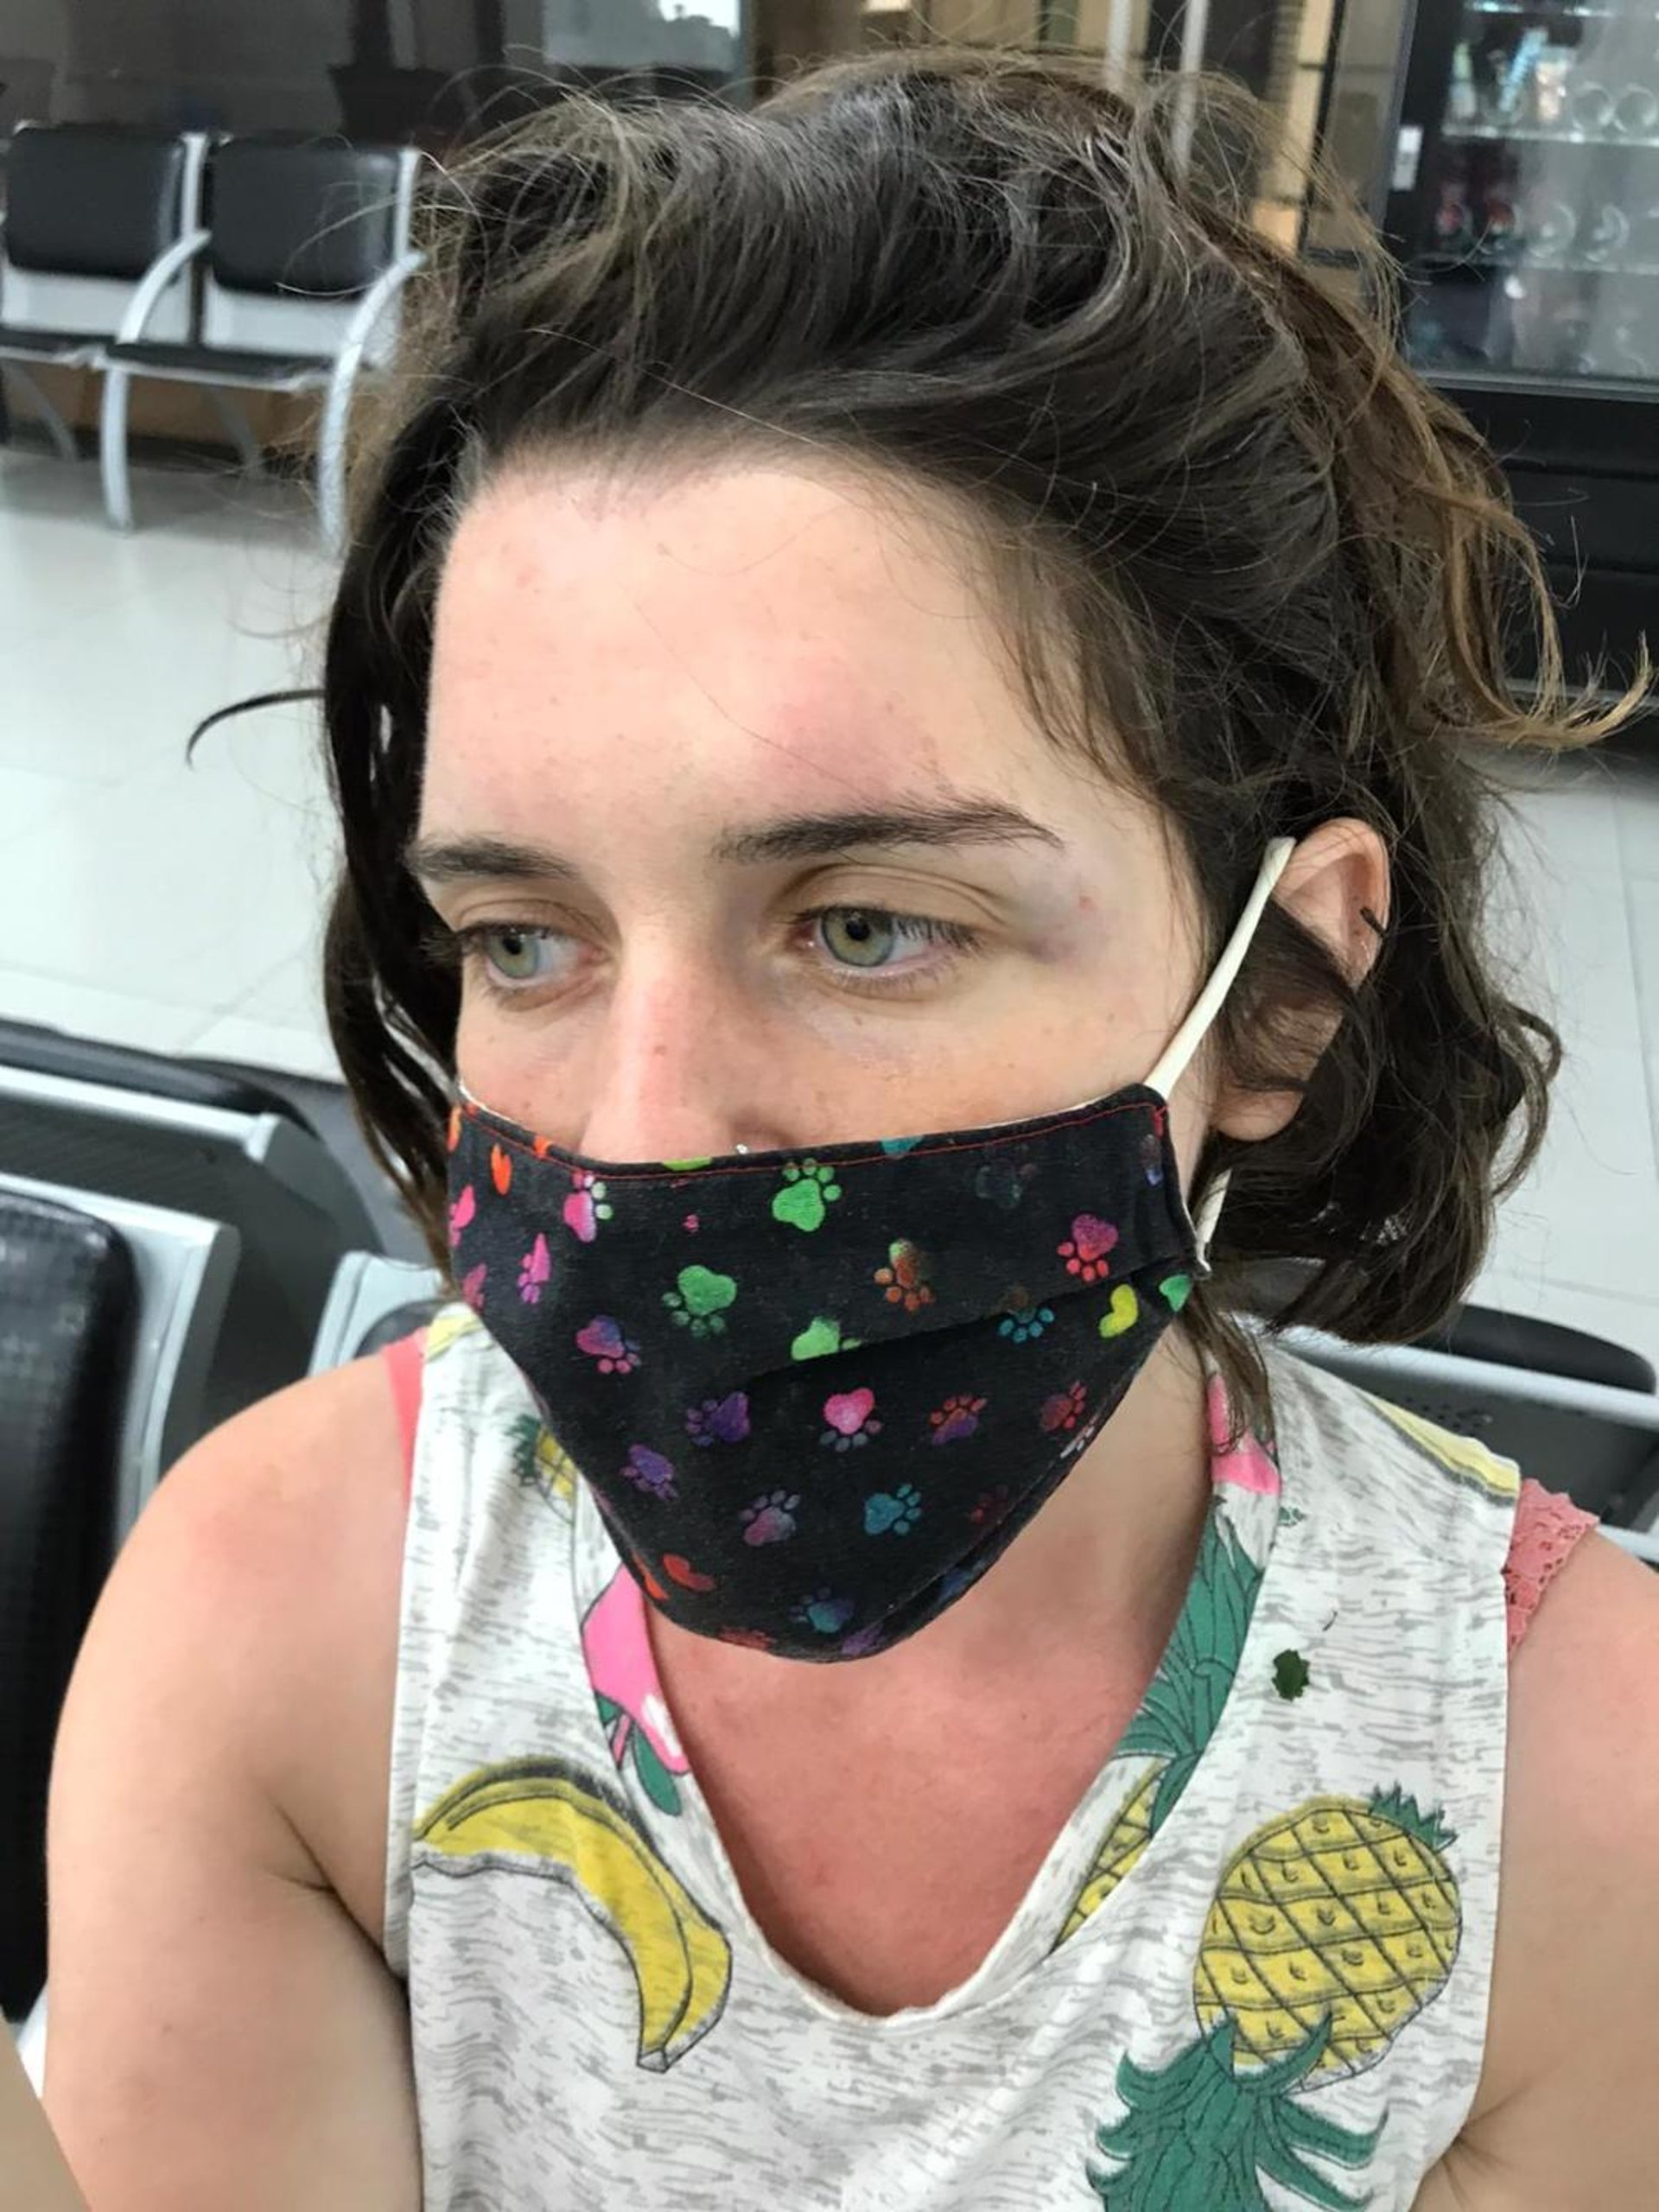 Tamar Schneck. Suffered a concussion when she was thrown to the ground after taking a direct hit from a water cannon at a protest, Juny 2020.